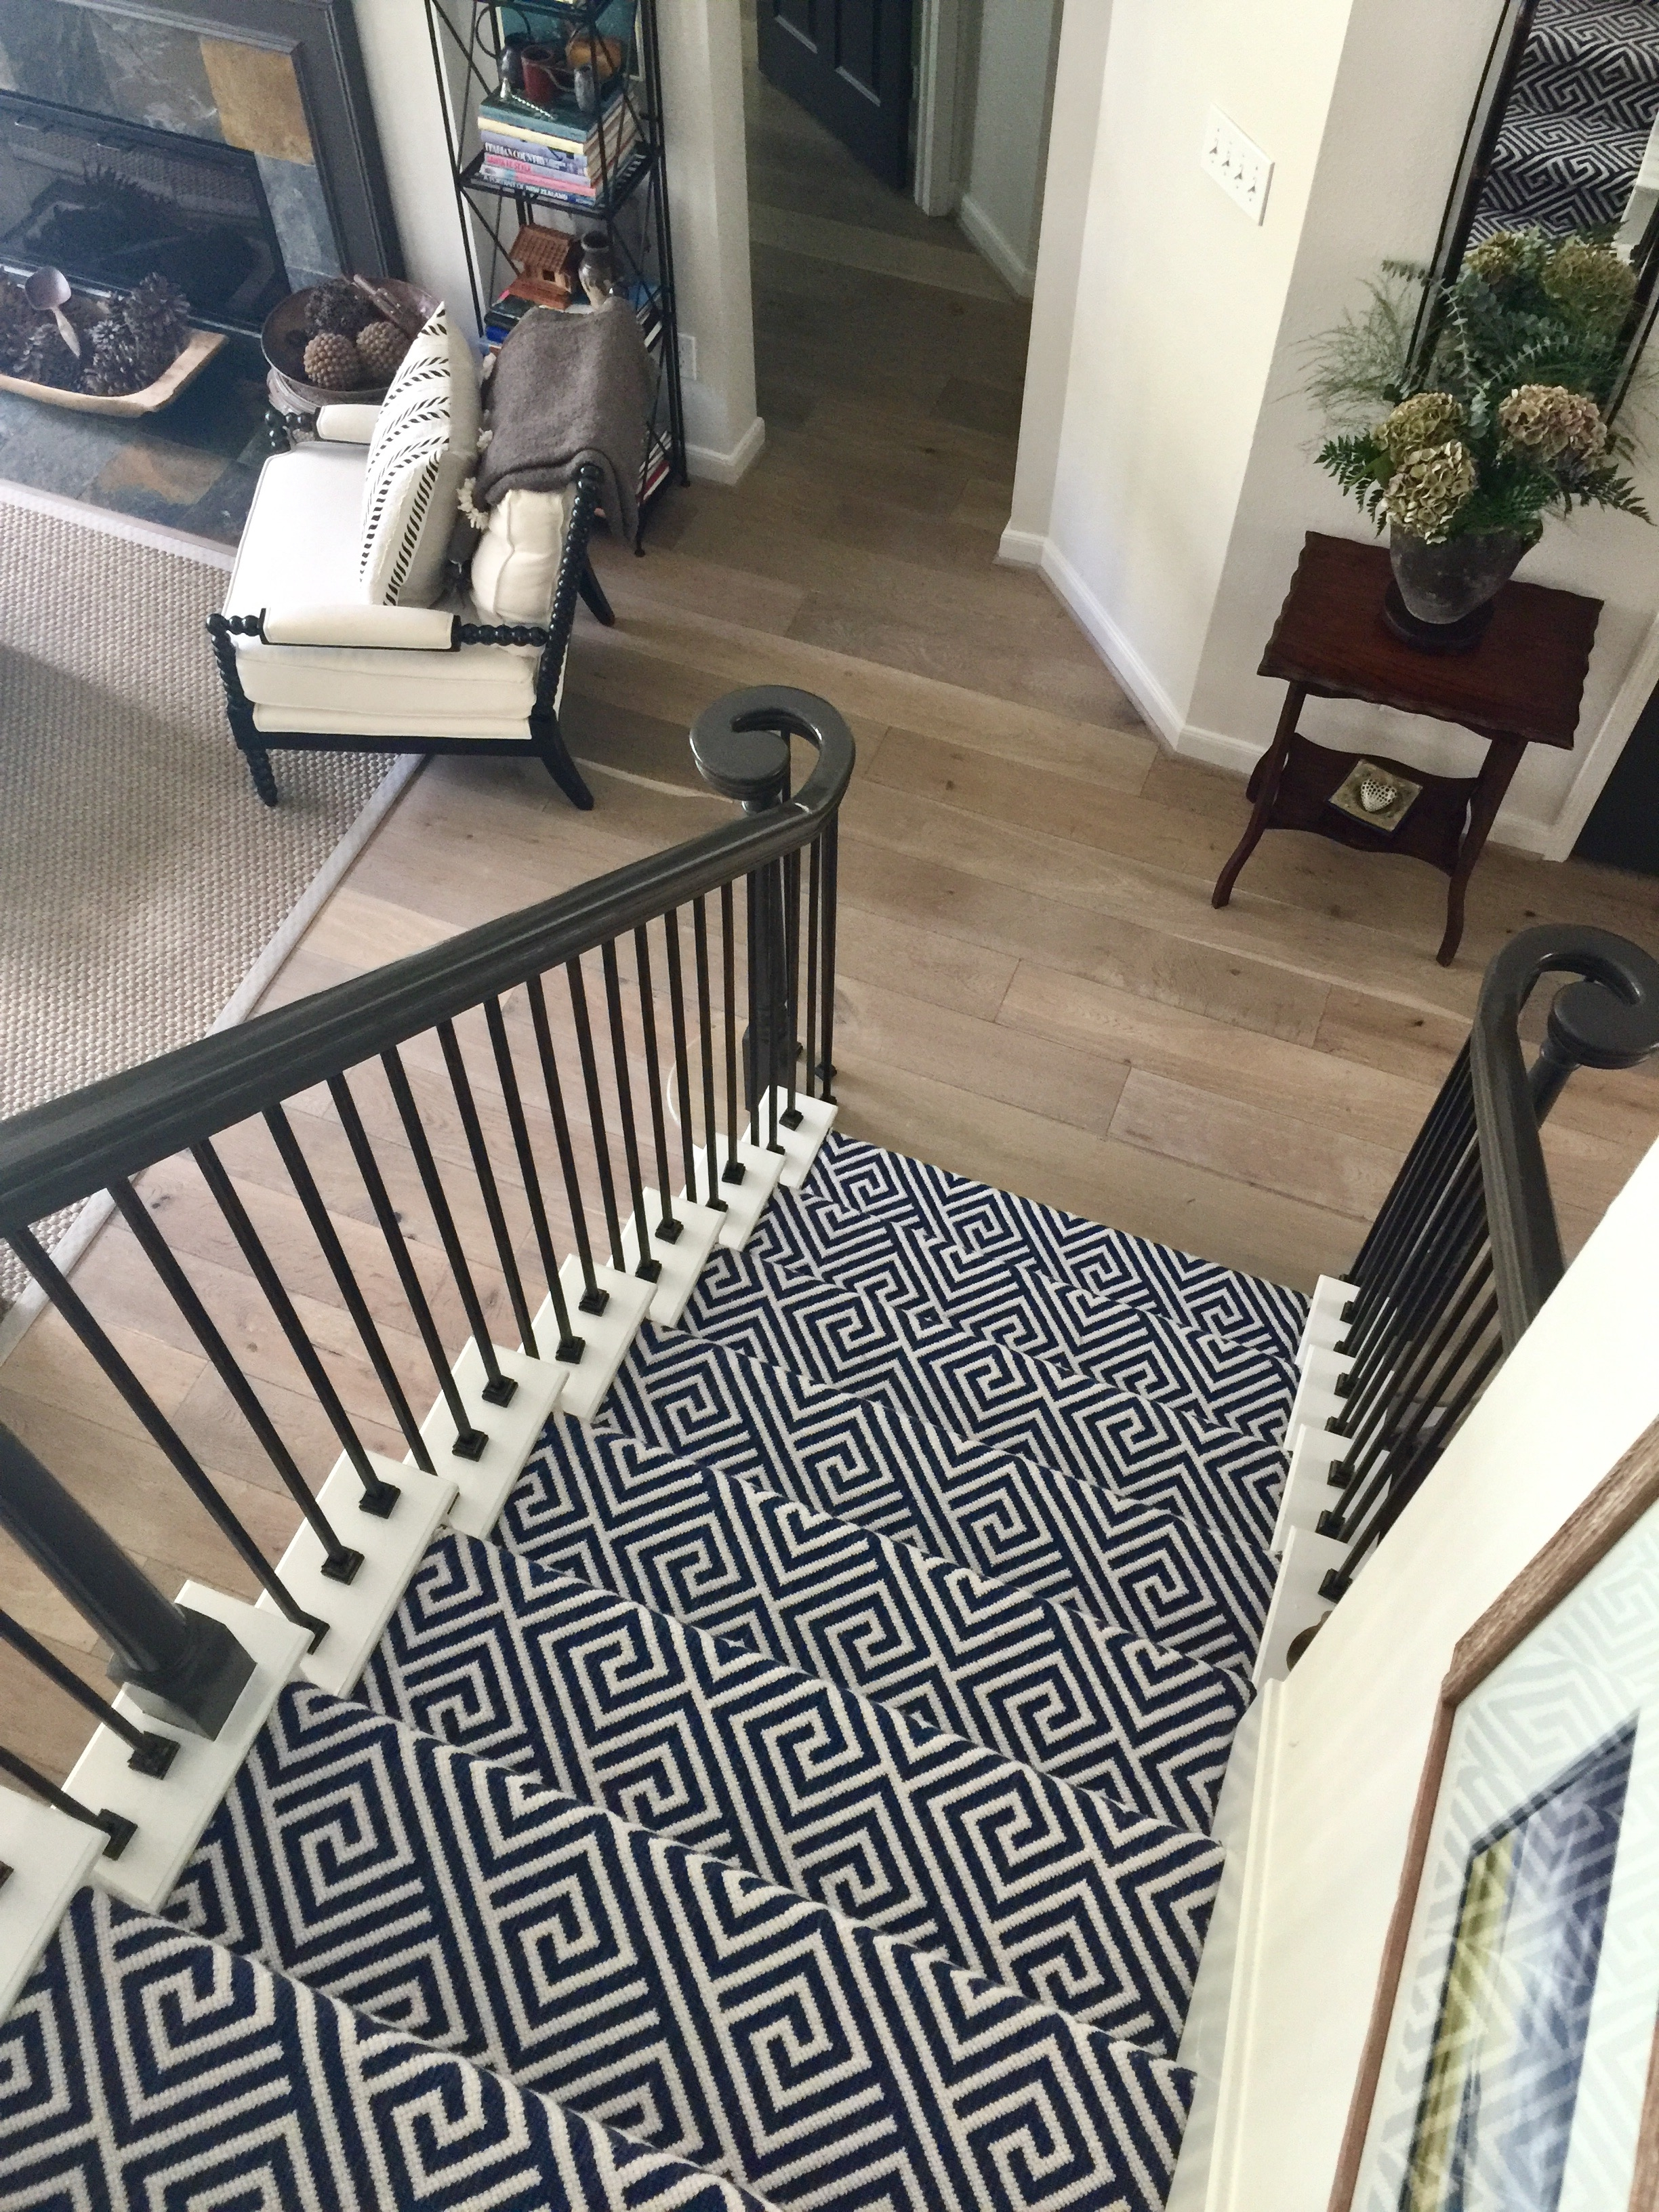 Should I Carpet My Stairs With The Same Carpet I Use Upstairs   Patterned Carpet For Stairs And Landing   Carpeting   Middle Open Concept   Diamond Uk Pattern   Striped Stair Carpet Entrance   Victorian Style